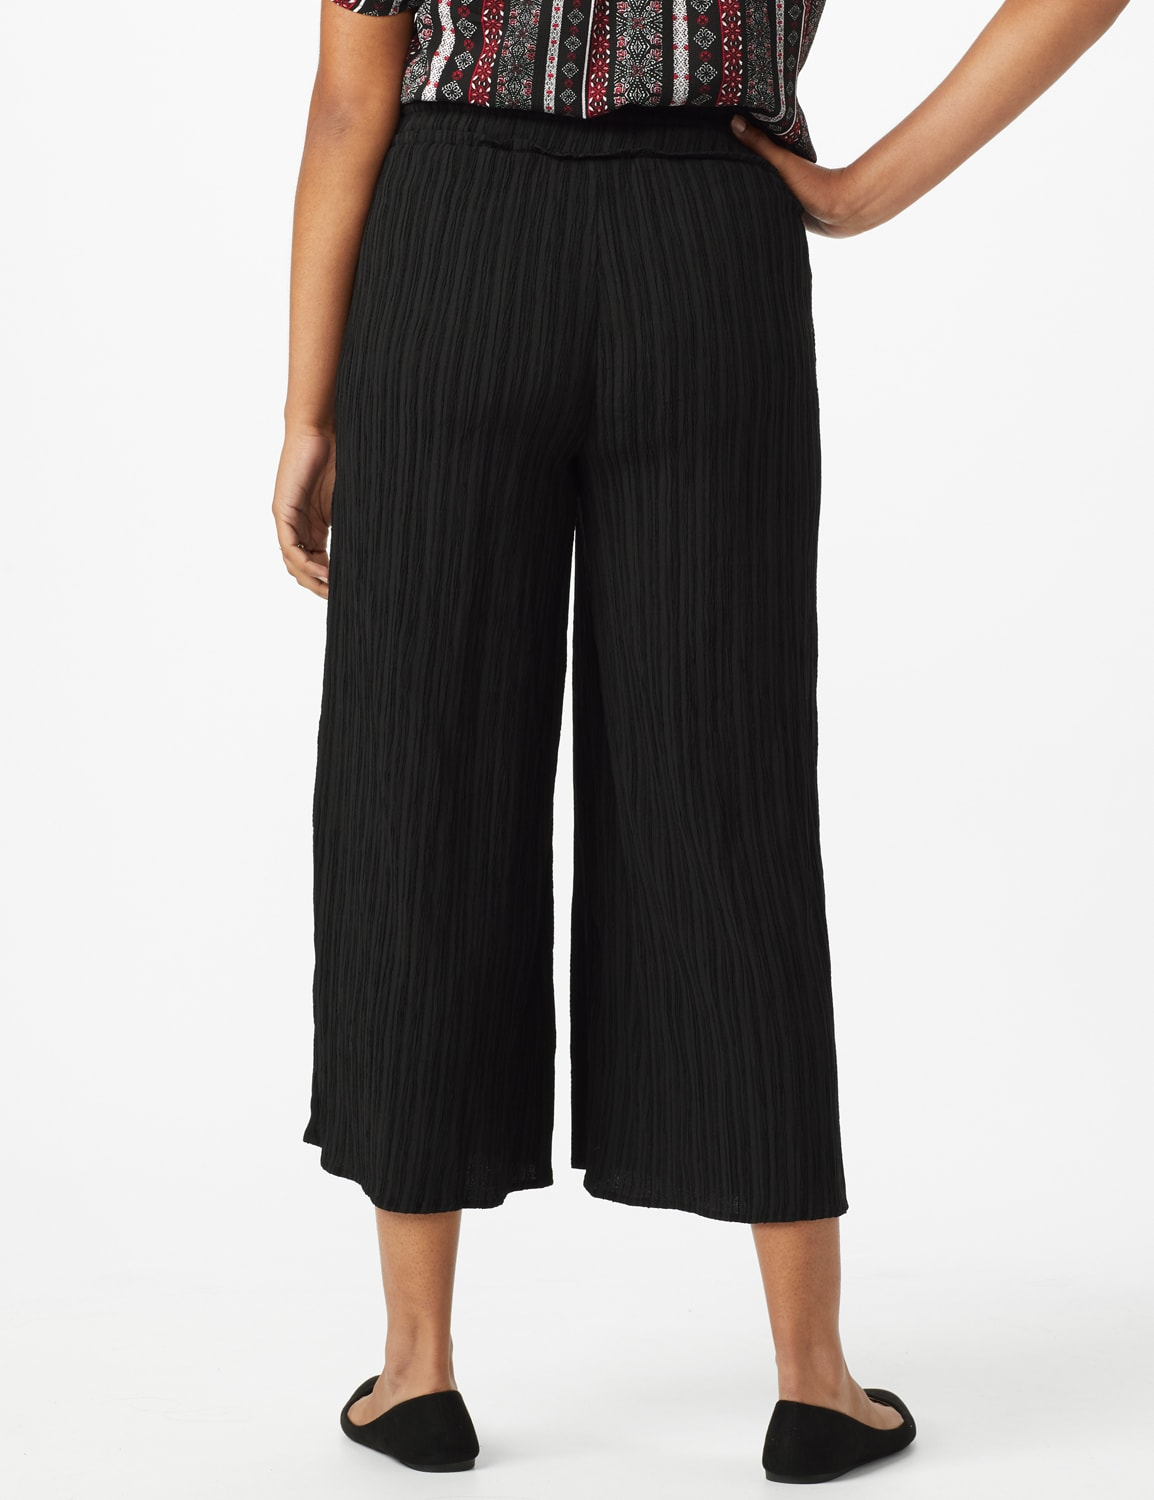 Solid Cropped Palazzo Pant with Elastic Waistband - Misses - Black - Back